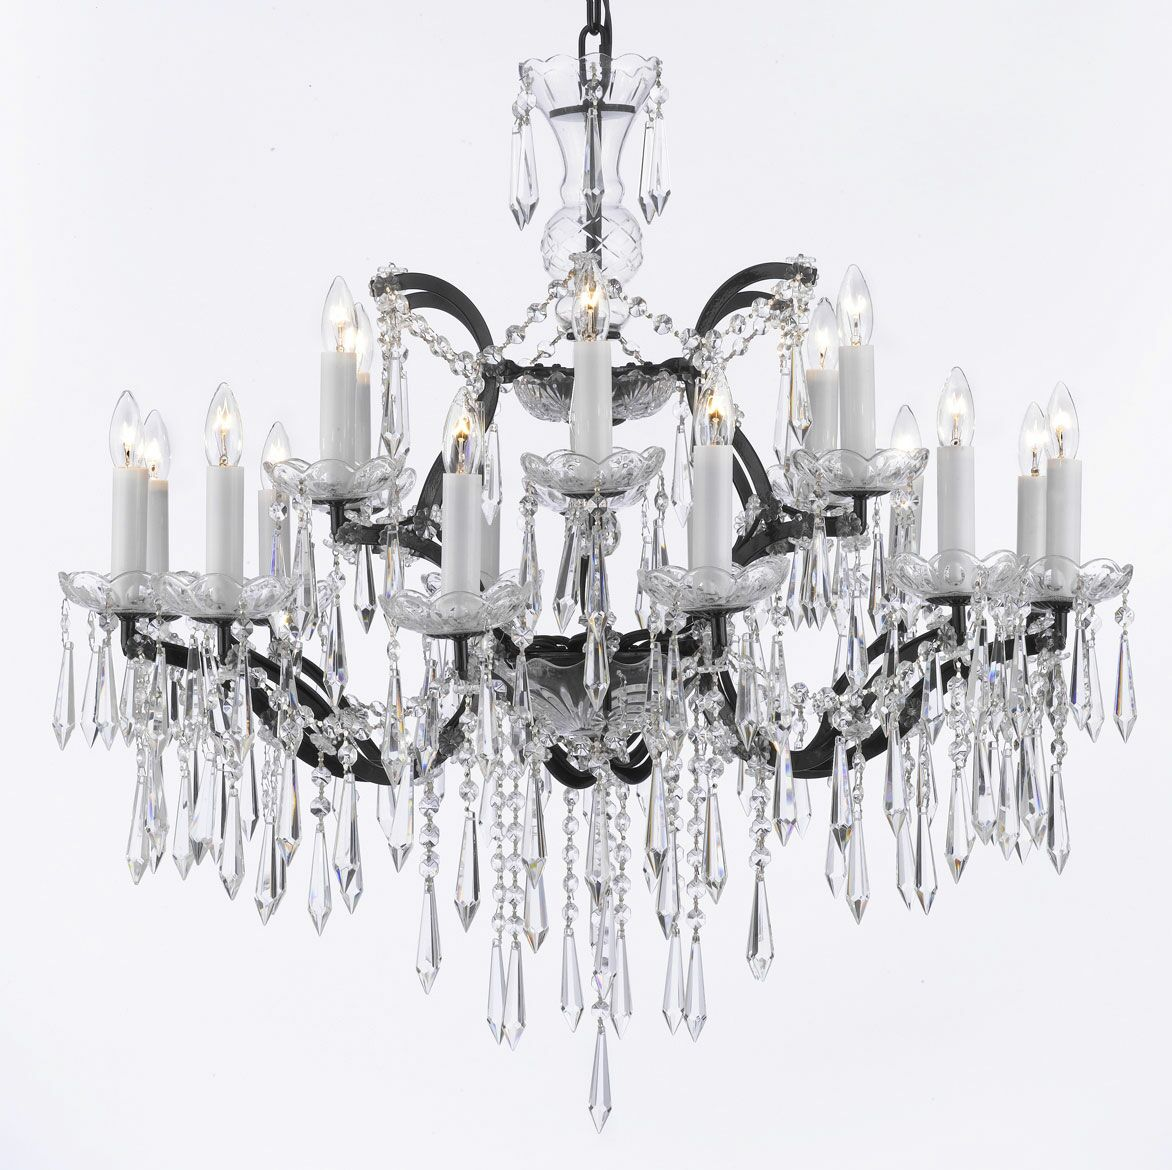 Alvan 18-Light Black Chain Candle Style Chandelier